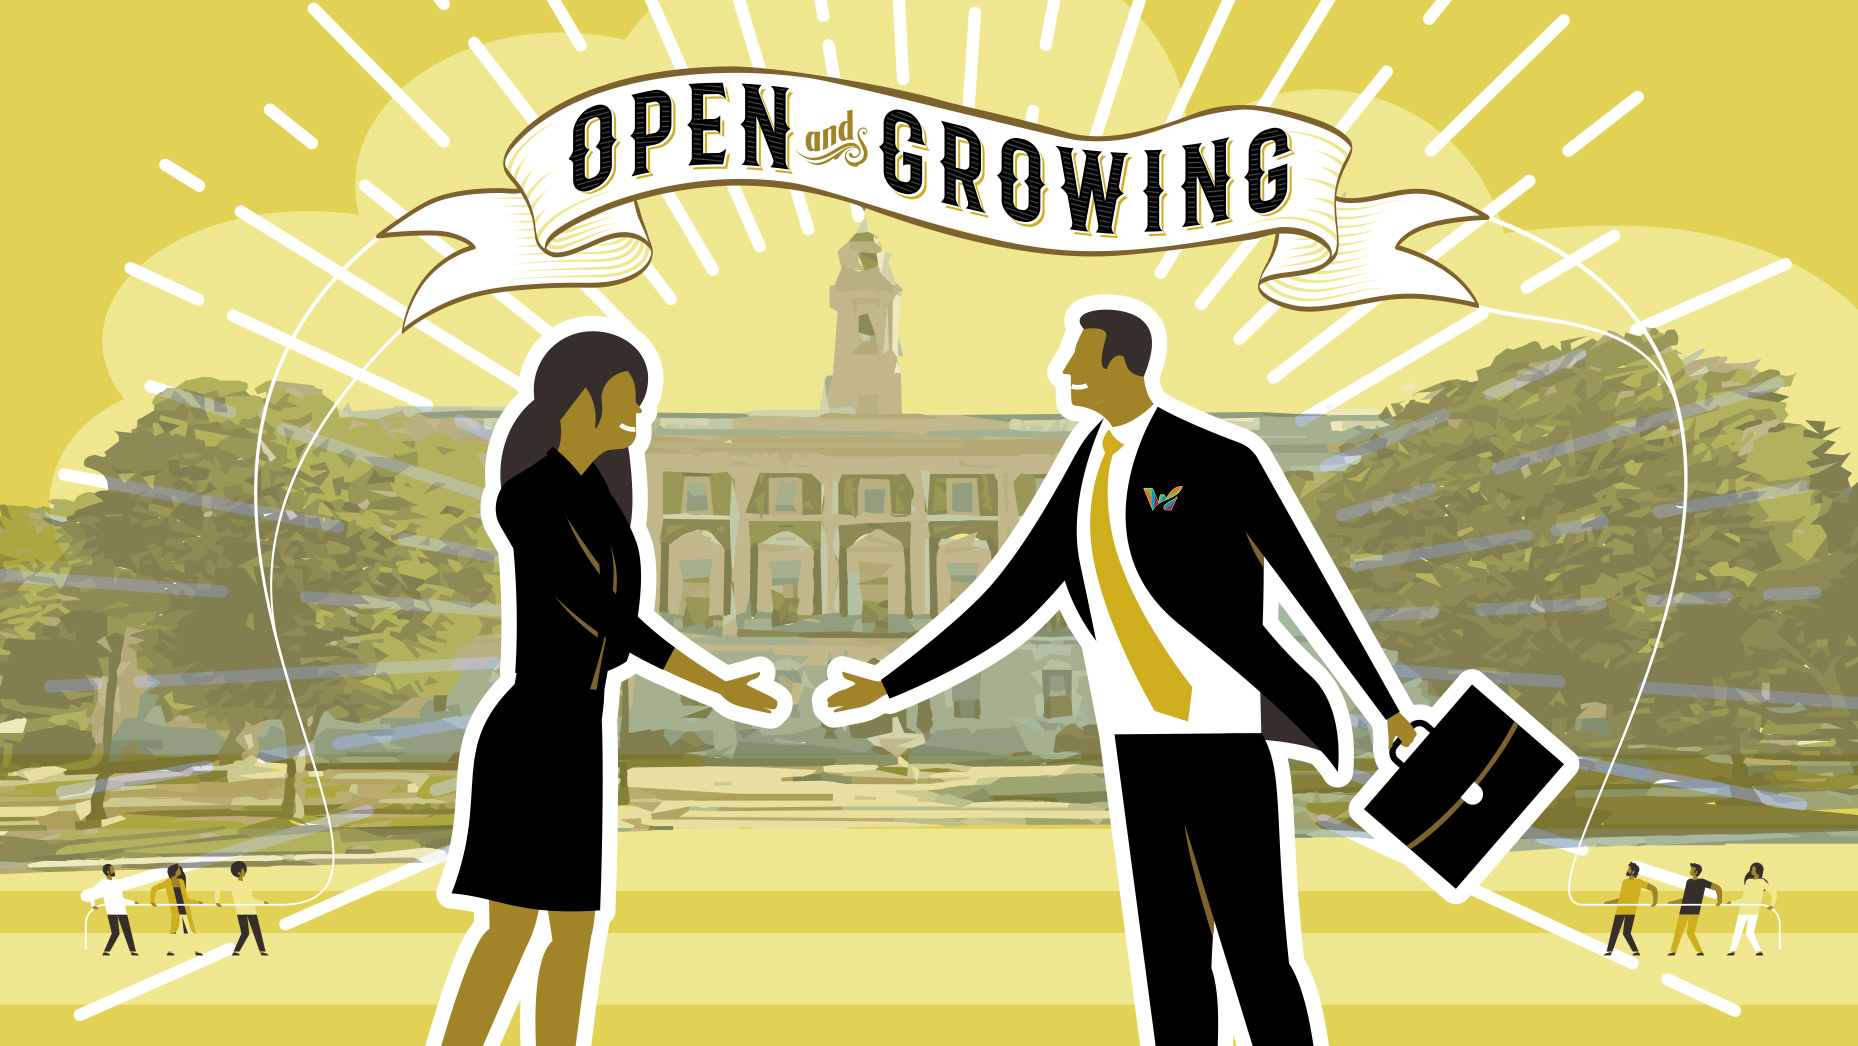 Graphic of a man and woman shaking hands in front of the Waterbury CT City Hall building below Open and Growing message